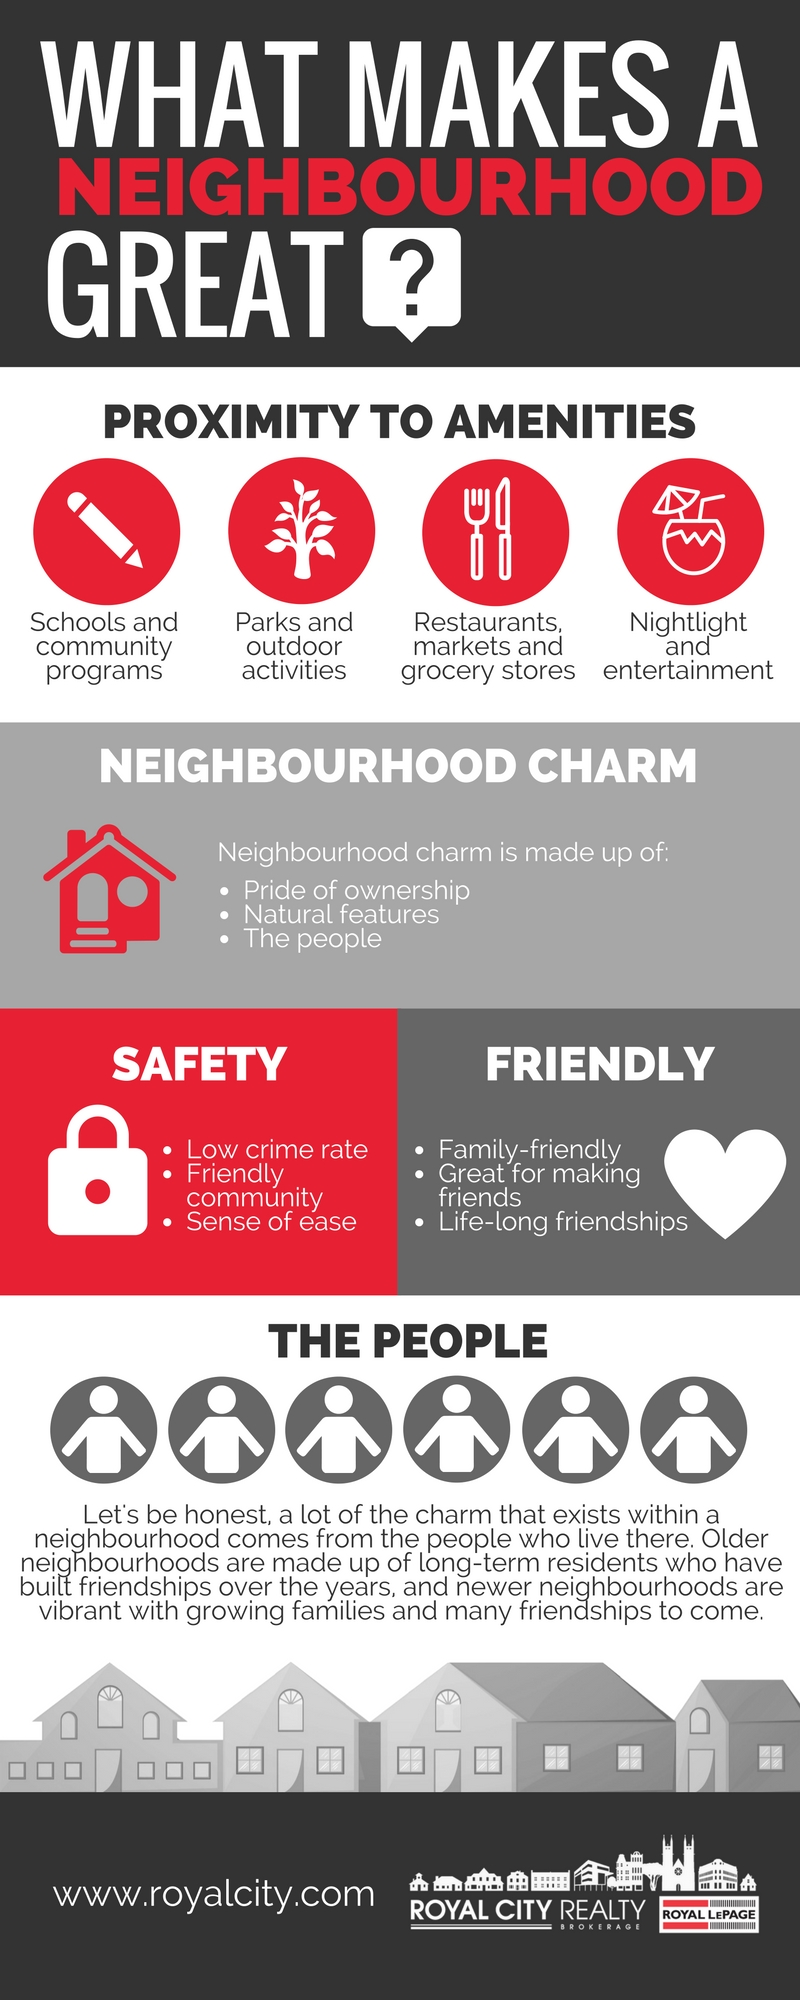 What makes a neighbourhood great